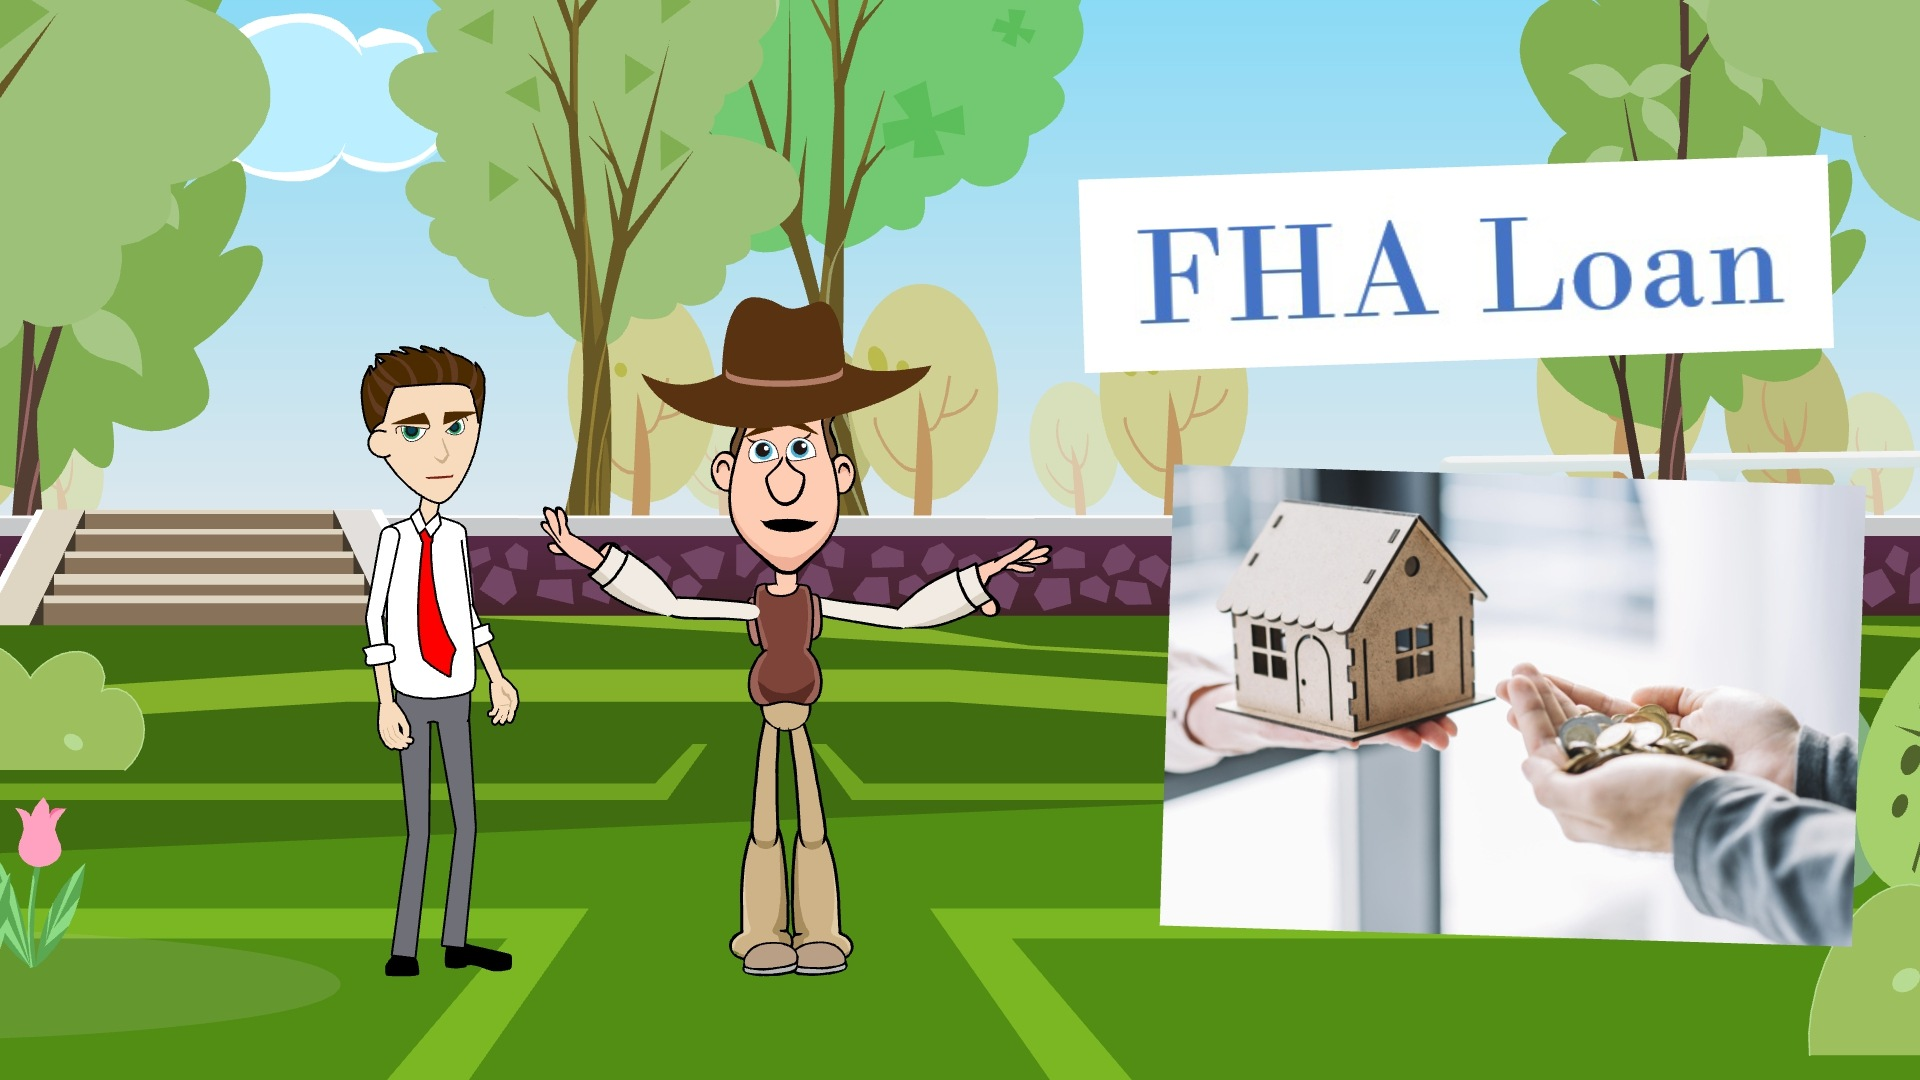 FHA Loan vs Conventional Mortgage